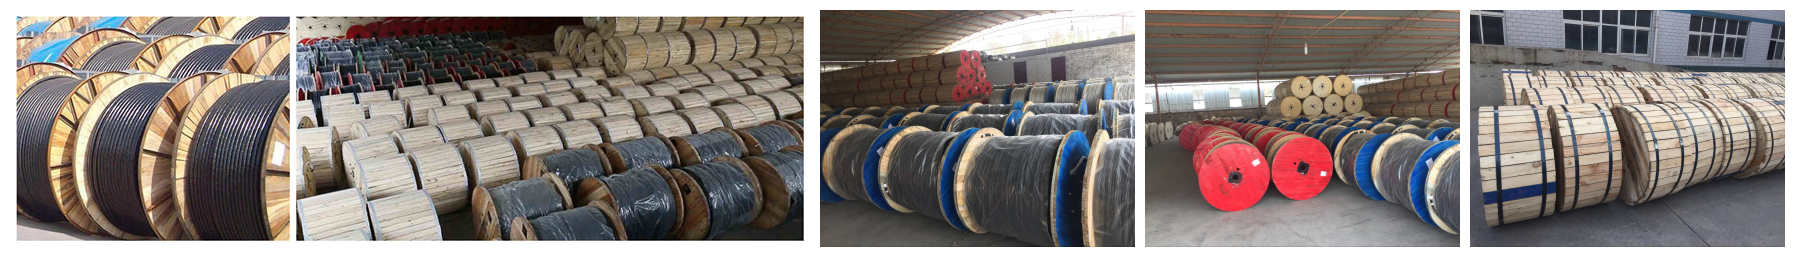 Huadong CY cable stock